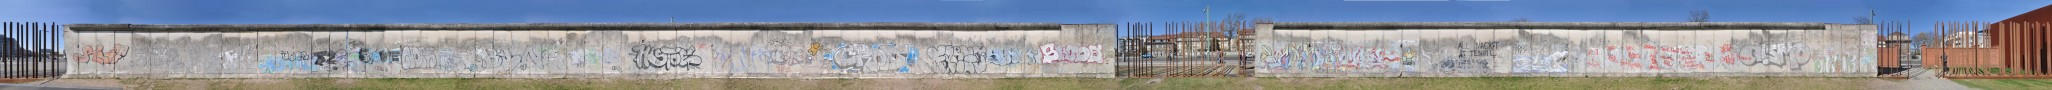 Berlin Wall – Bernauer Strasse • Berlin • Germany